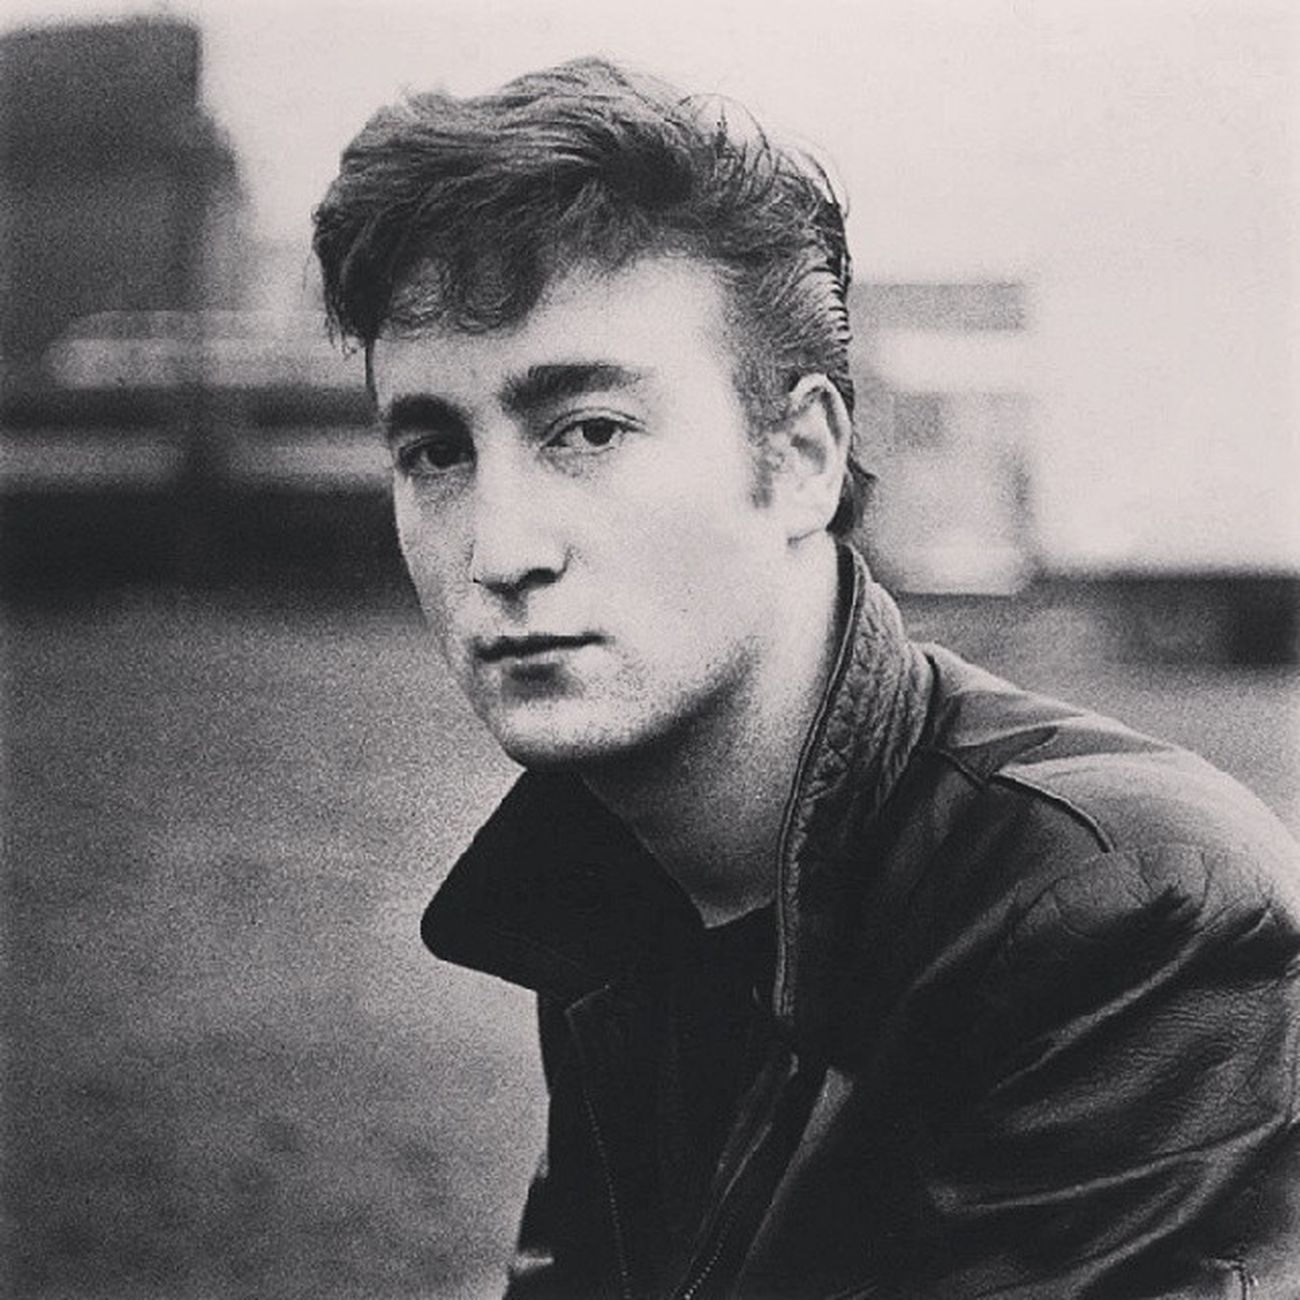 """""""There are places I remember All my life, though some have changed"""" Inmylife Jonhlennon"""